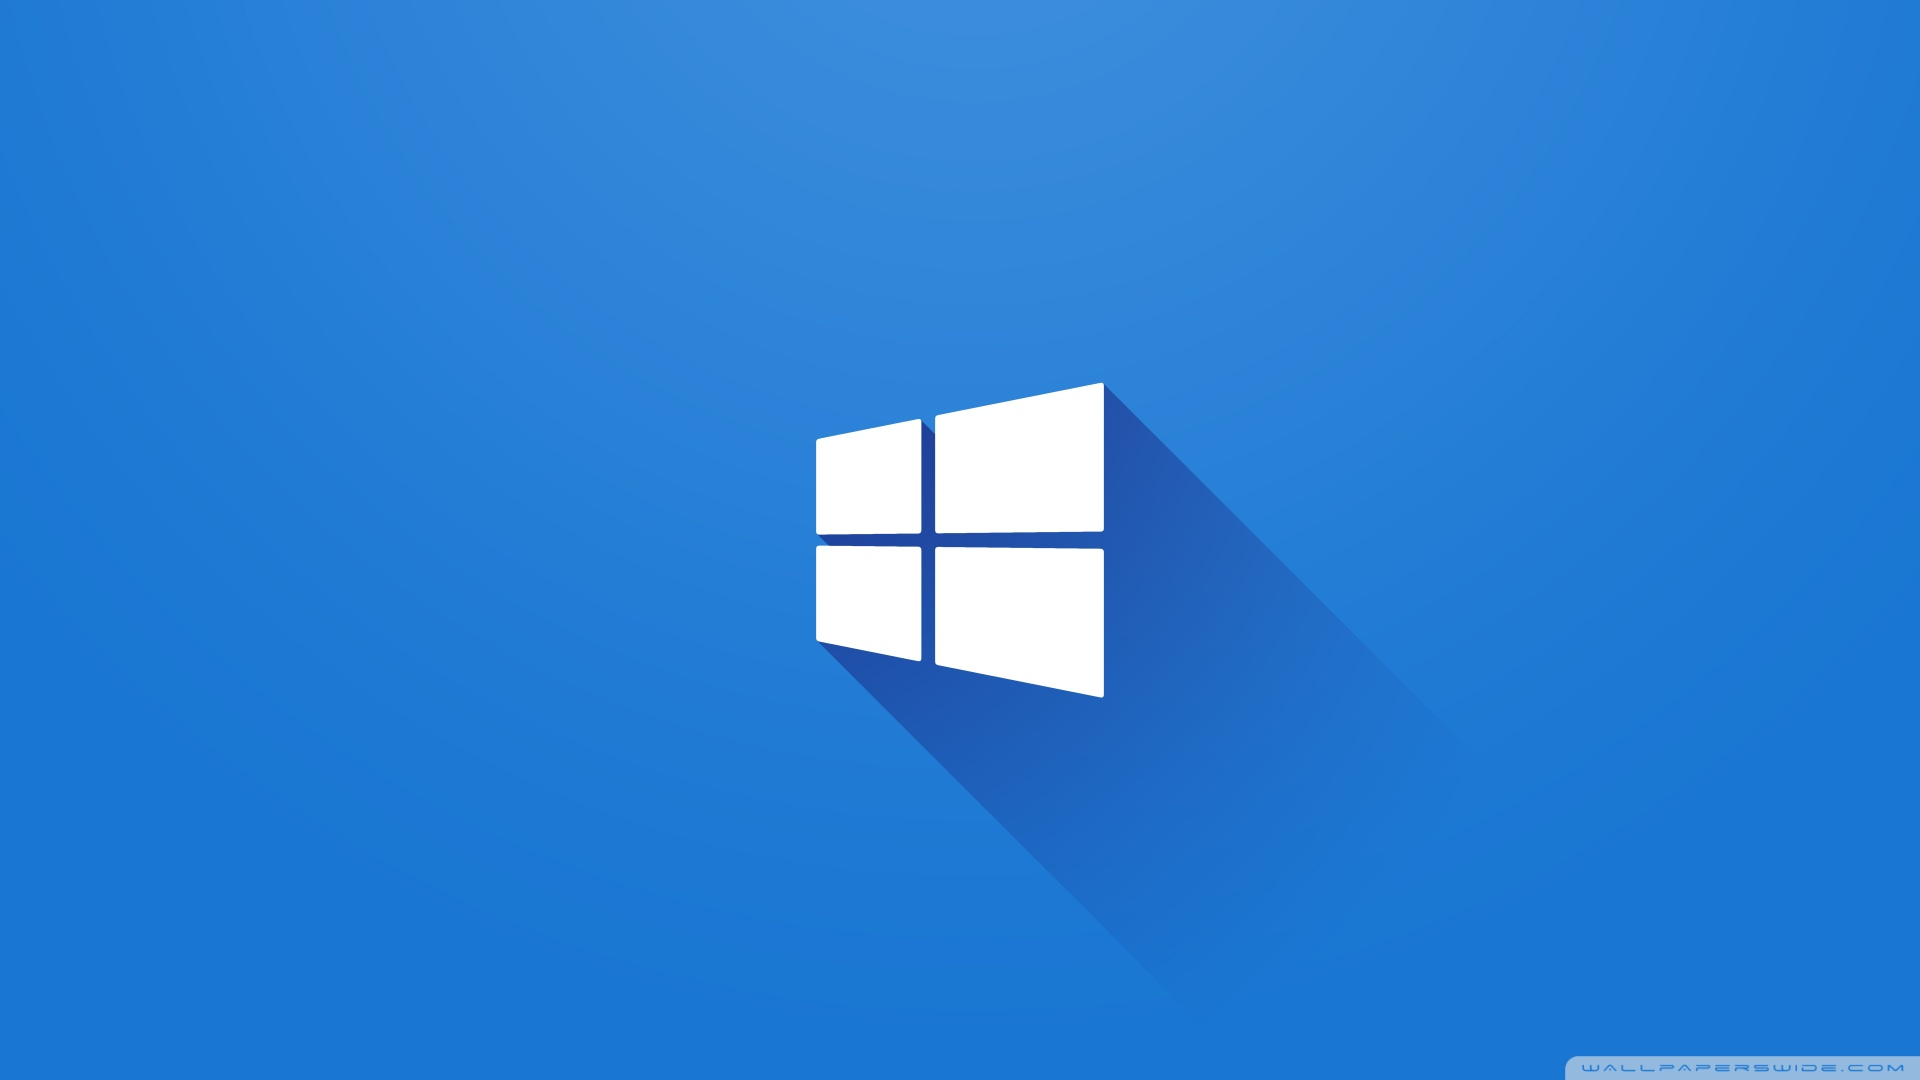 Windows 10 Insider Preview 10537 Leaked Online 1920x1080